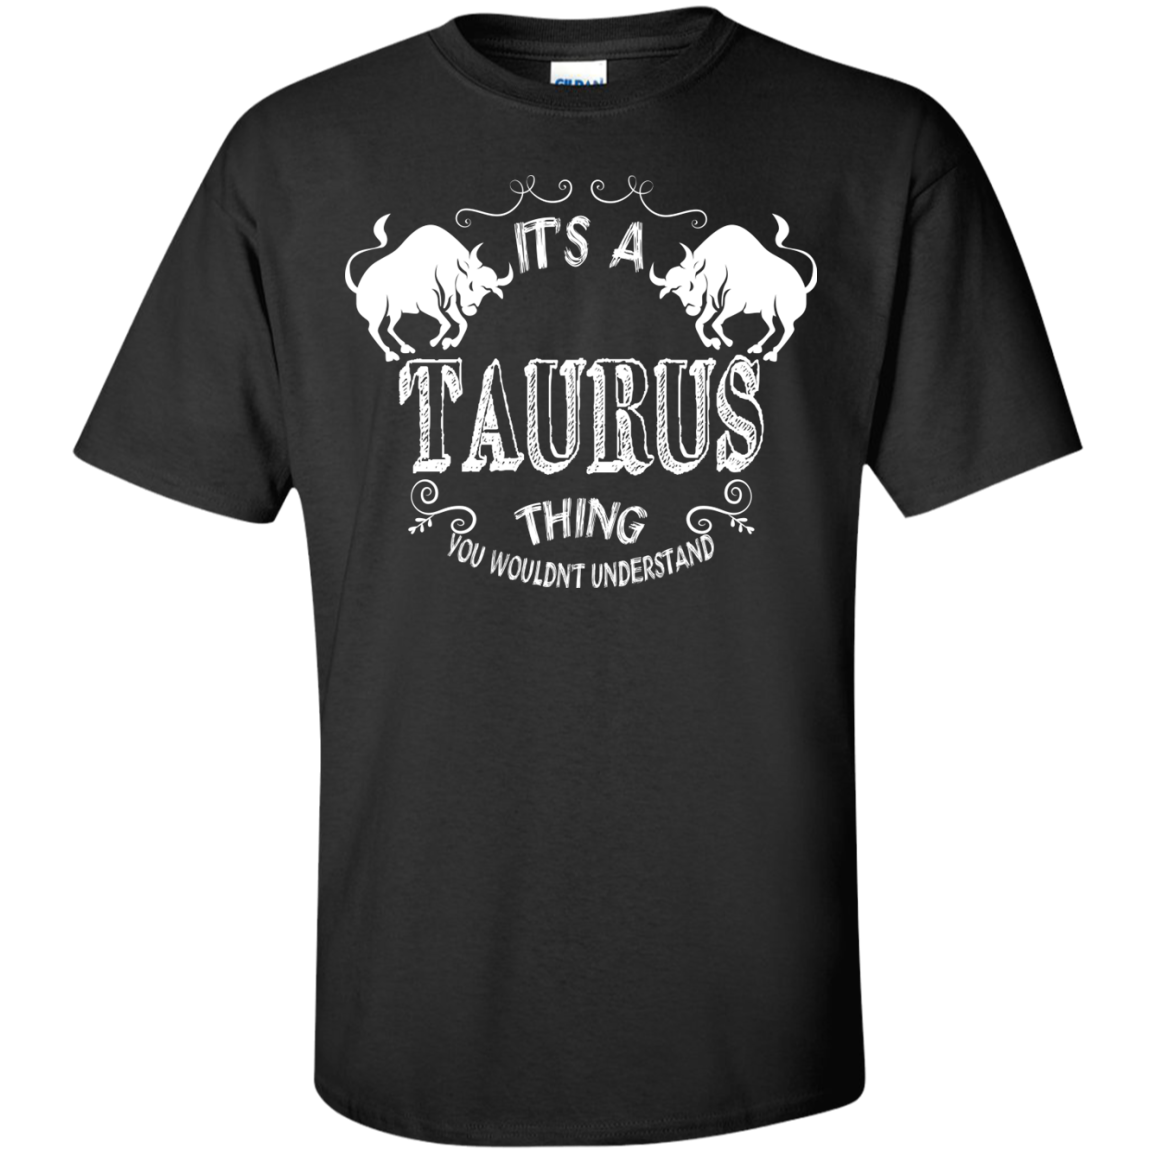 IT'S A TAURUS THING...YOU WOULDN'T UNDERSTAND - ZODIAC T SHIRT